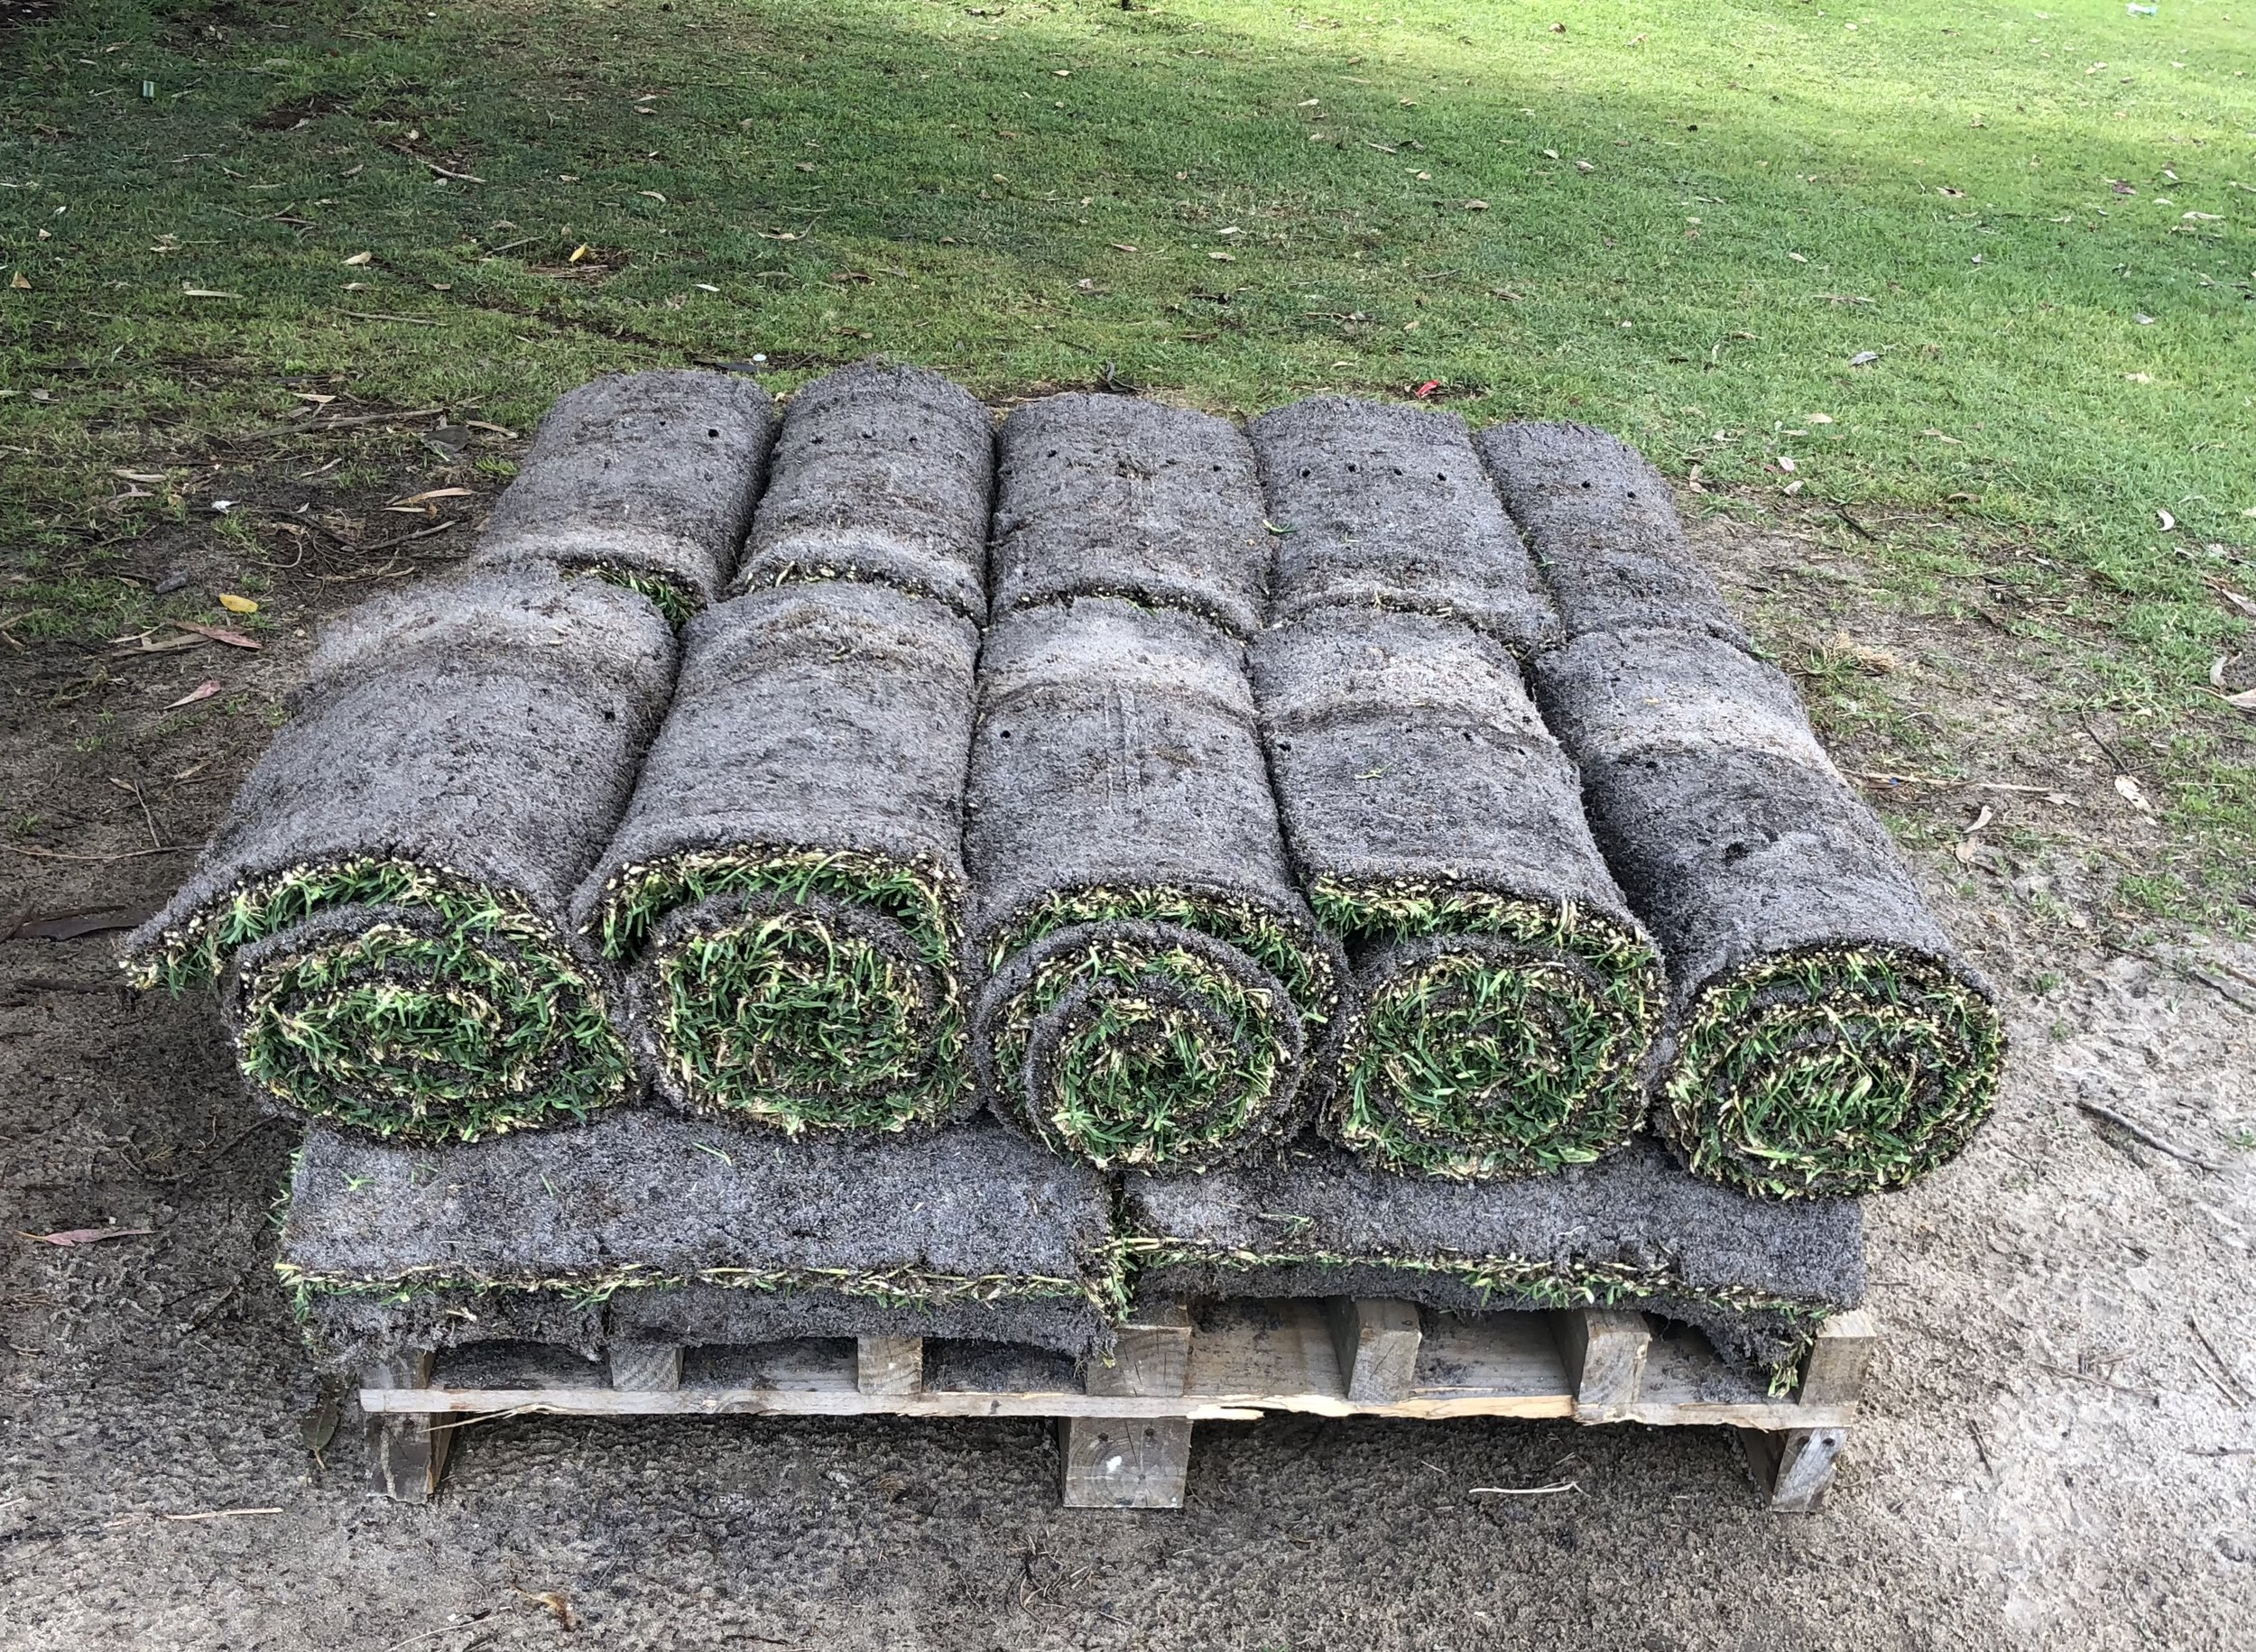 Buffalo roll on lawn ready for pick up